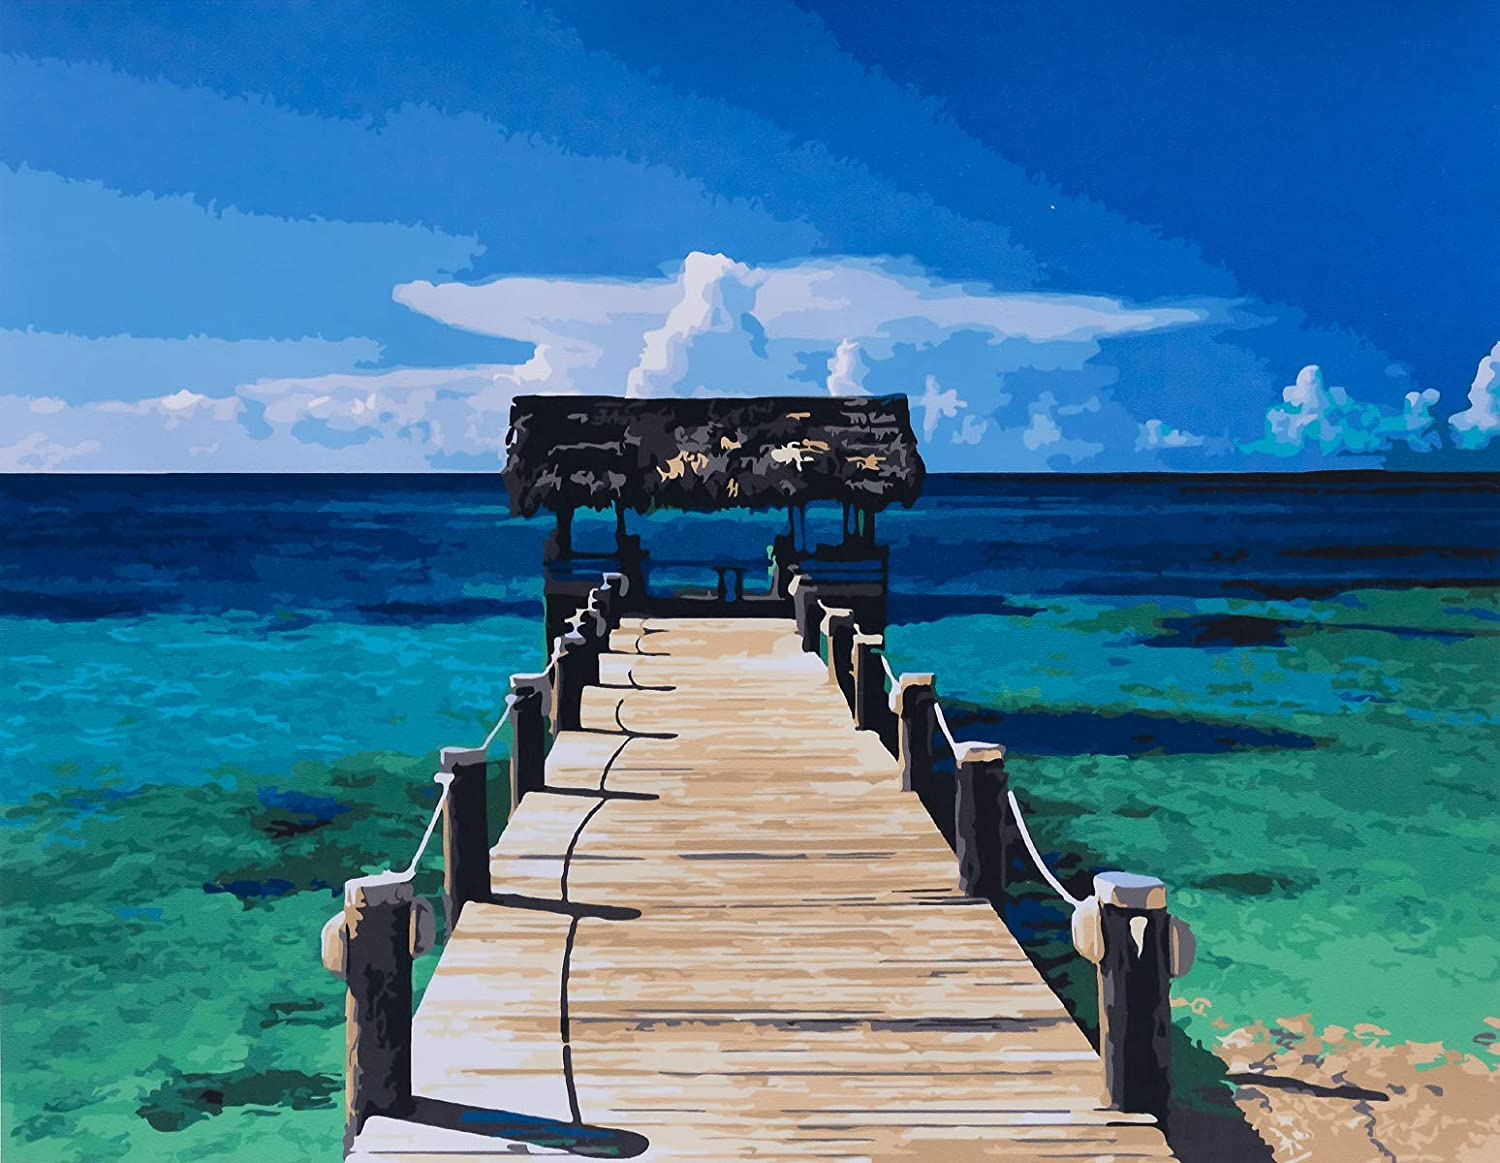 Hammock Sun Sea Landscape Paint By Numbers Kit DIY Number Canvas Painting Oil